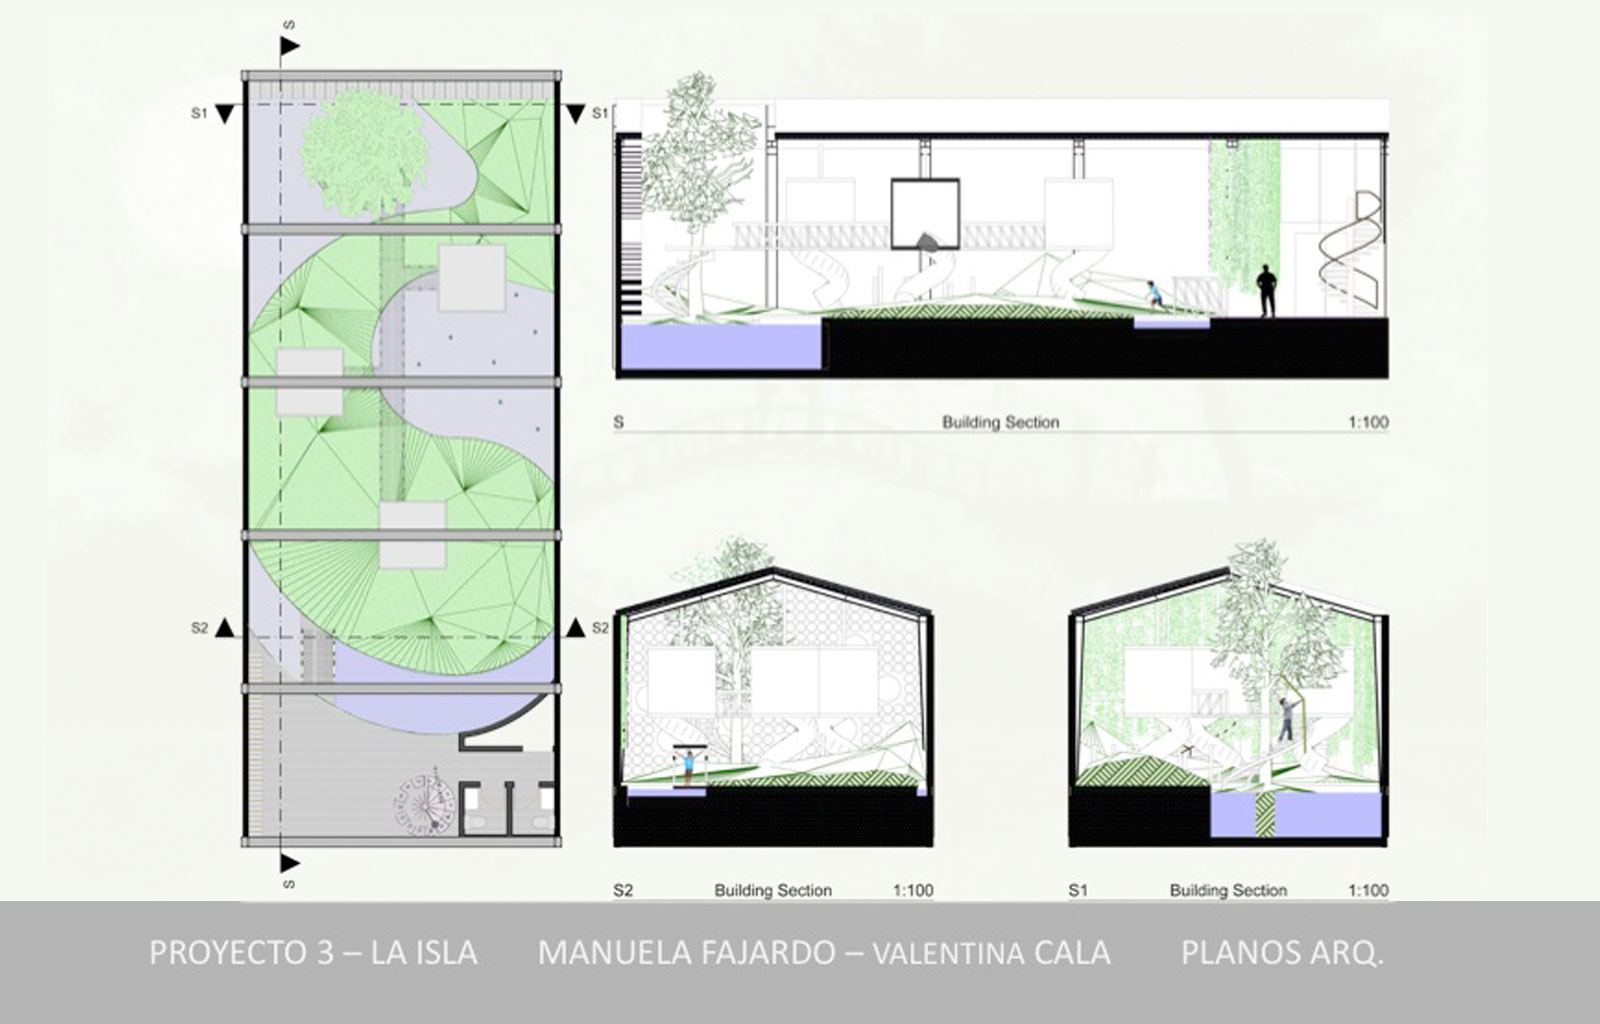 Blended master in interior design ied madrid ied master for Master en arquitectura de interiores